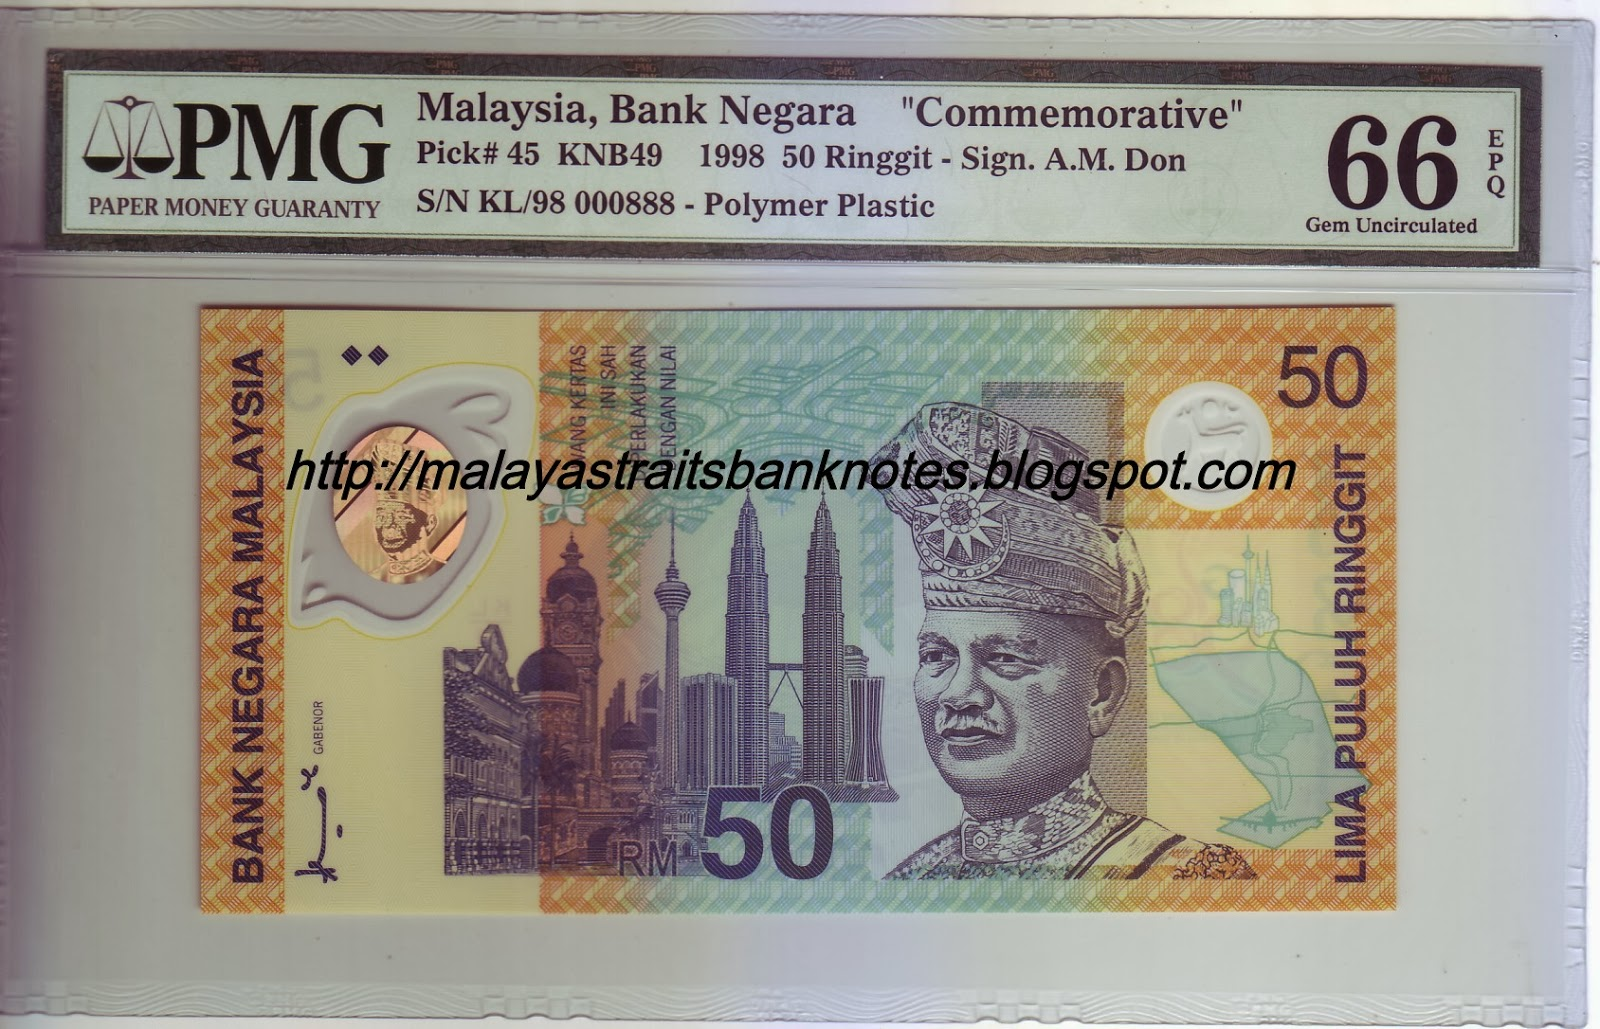 Malaysia Banknotes Images - Reverse Search